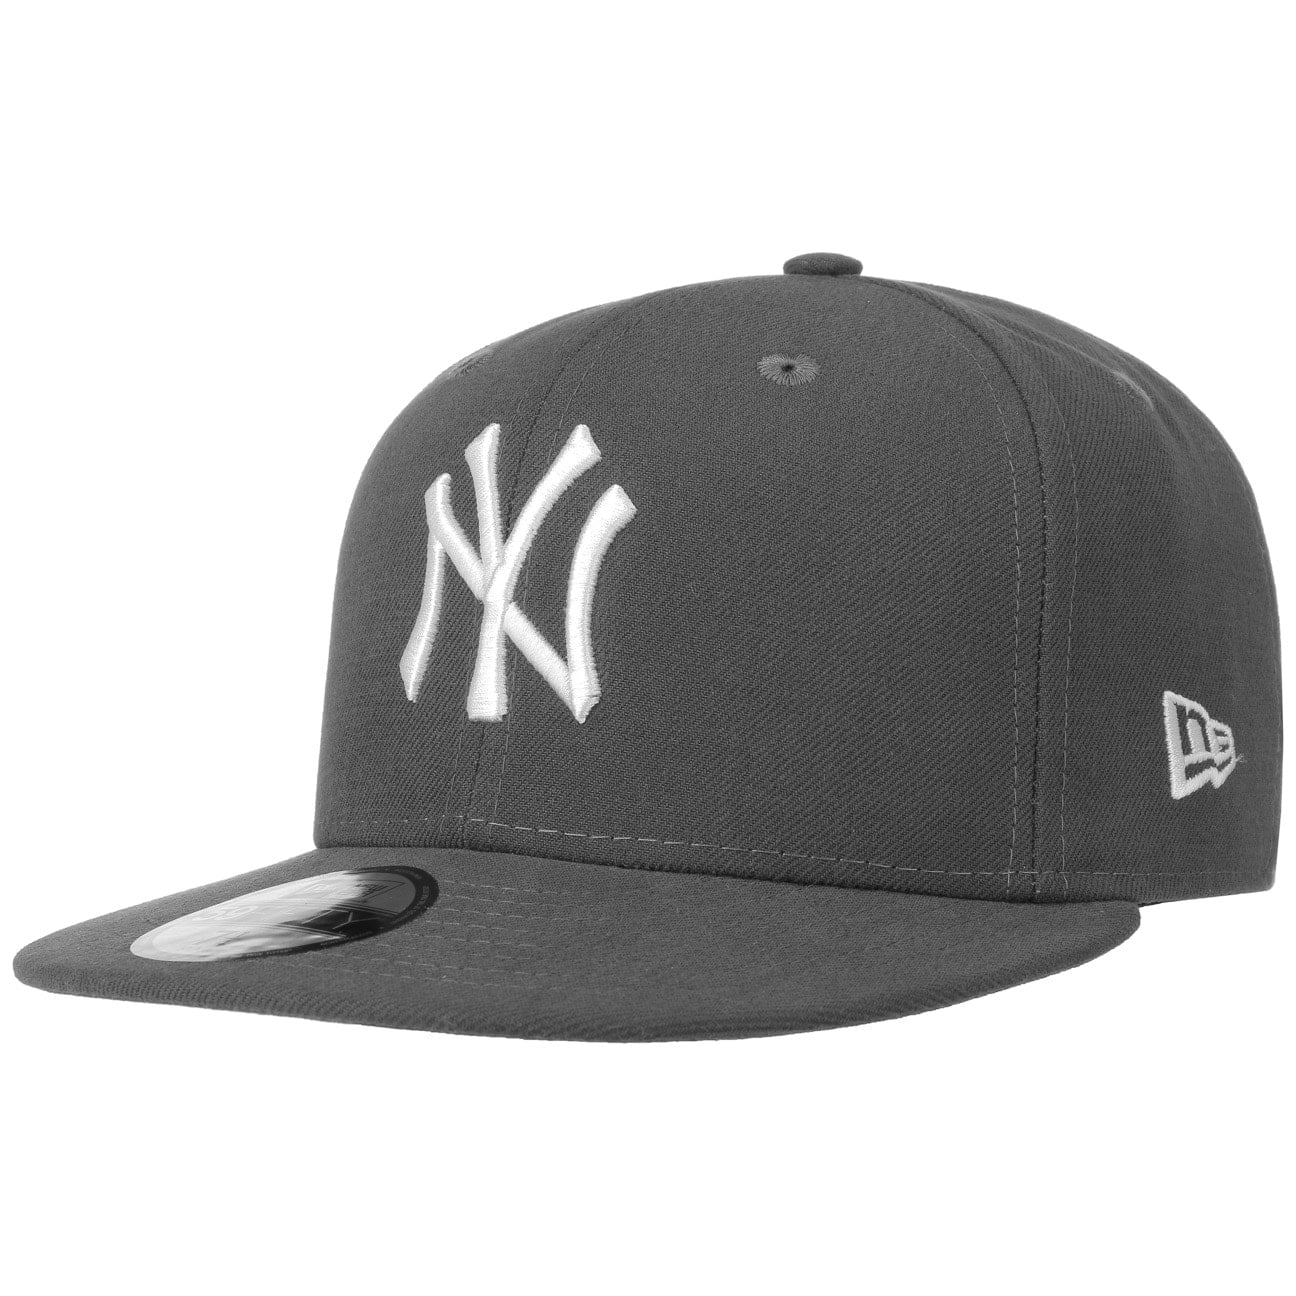 59Fifty Gorra MLB Basic NY by New Era